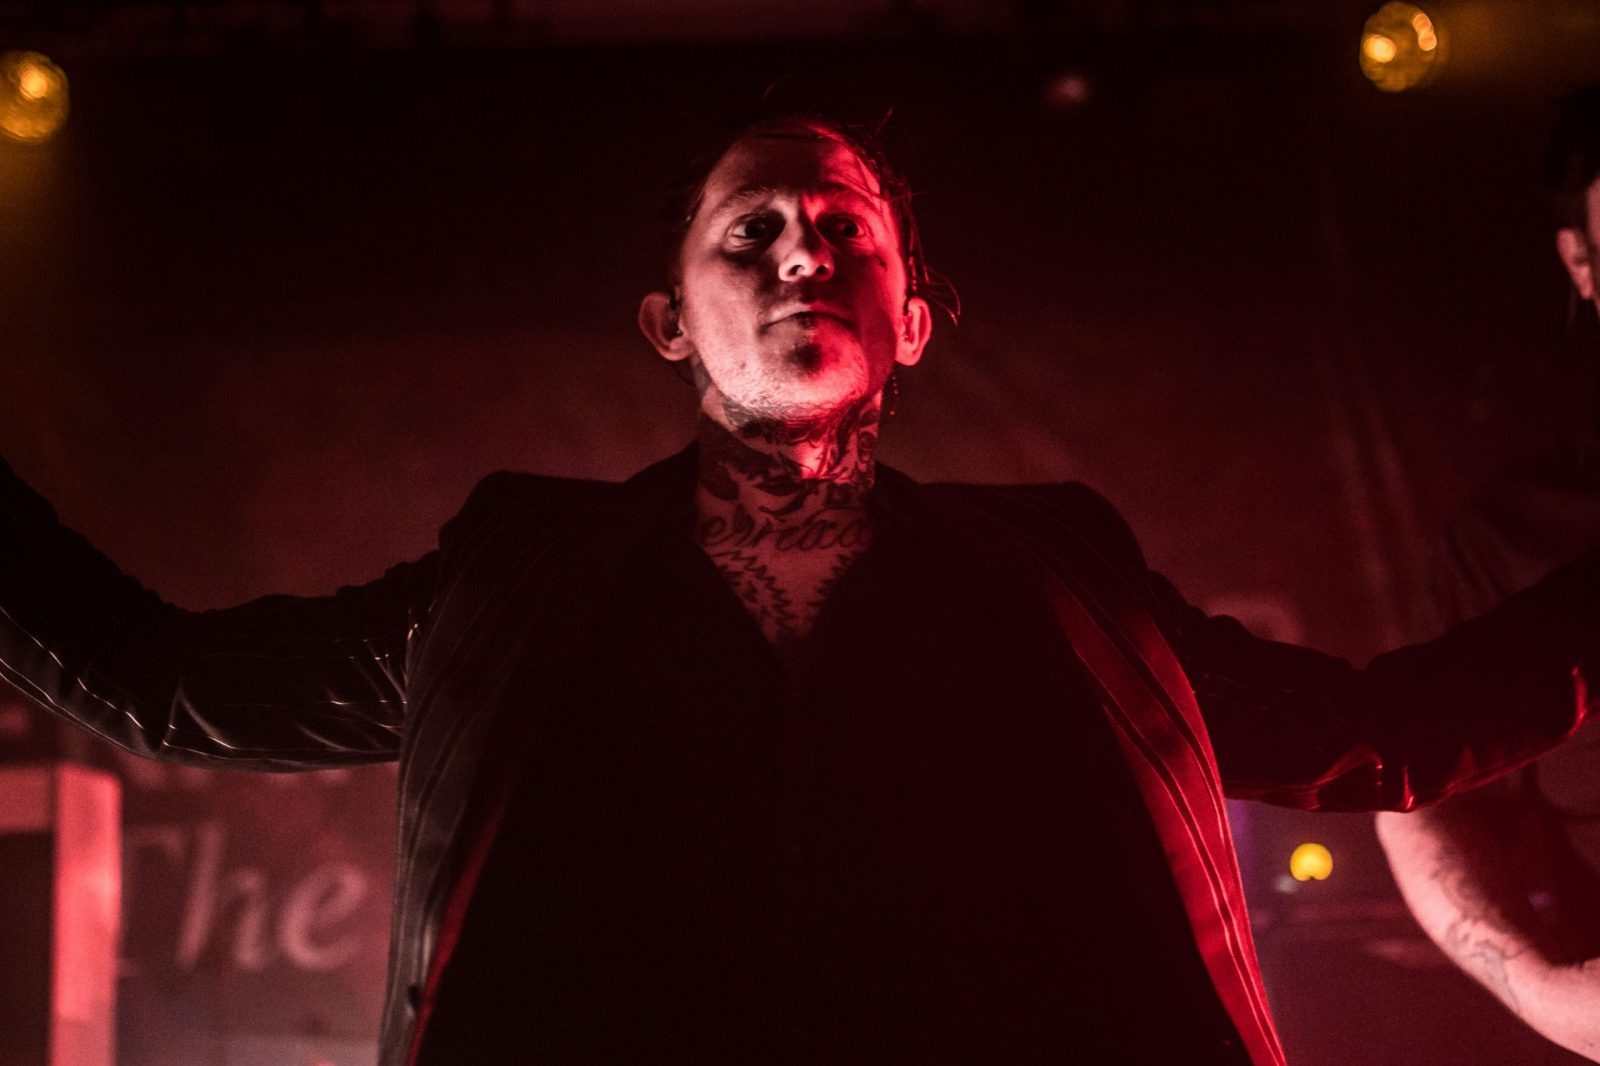 Frank Carter & The Rattlesnakes @ Oh Yeah Music Centre 29